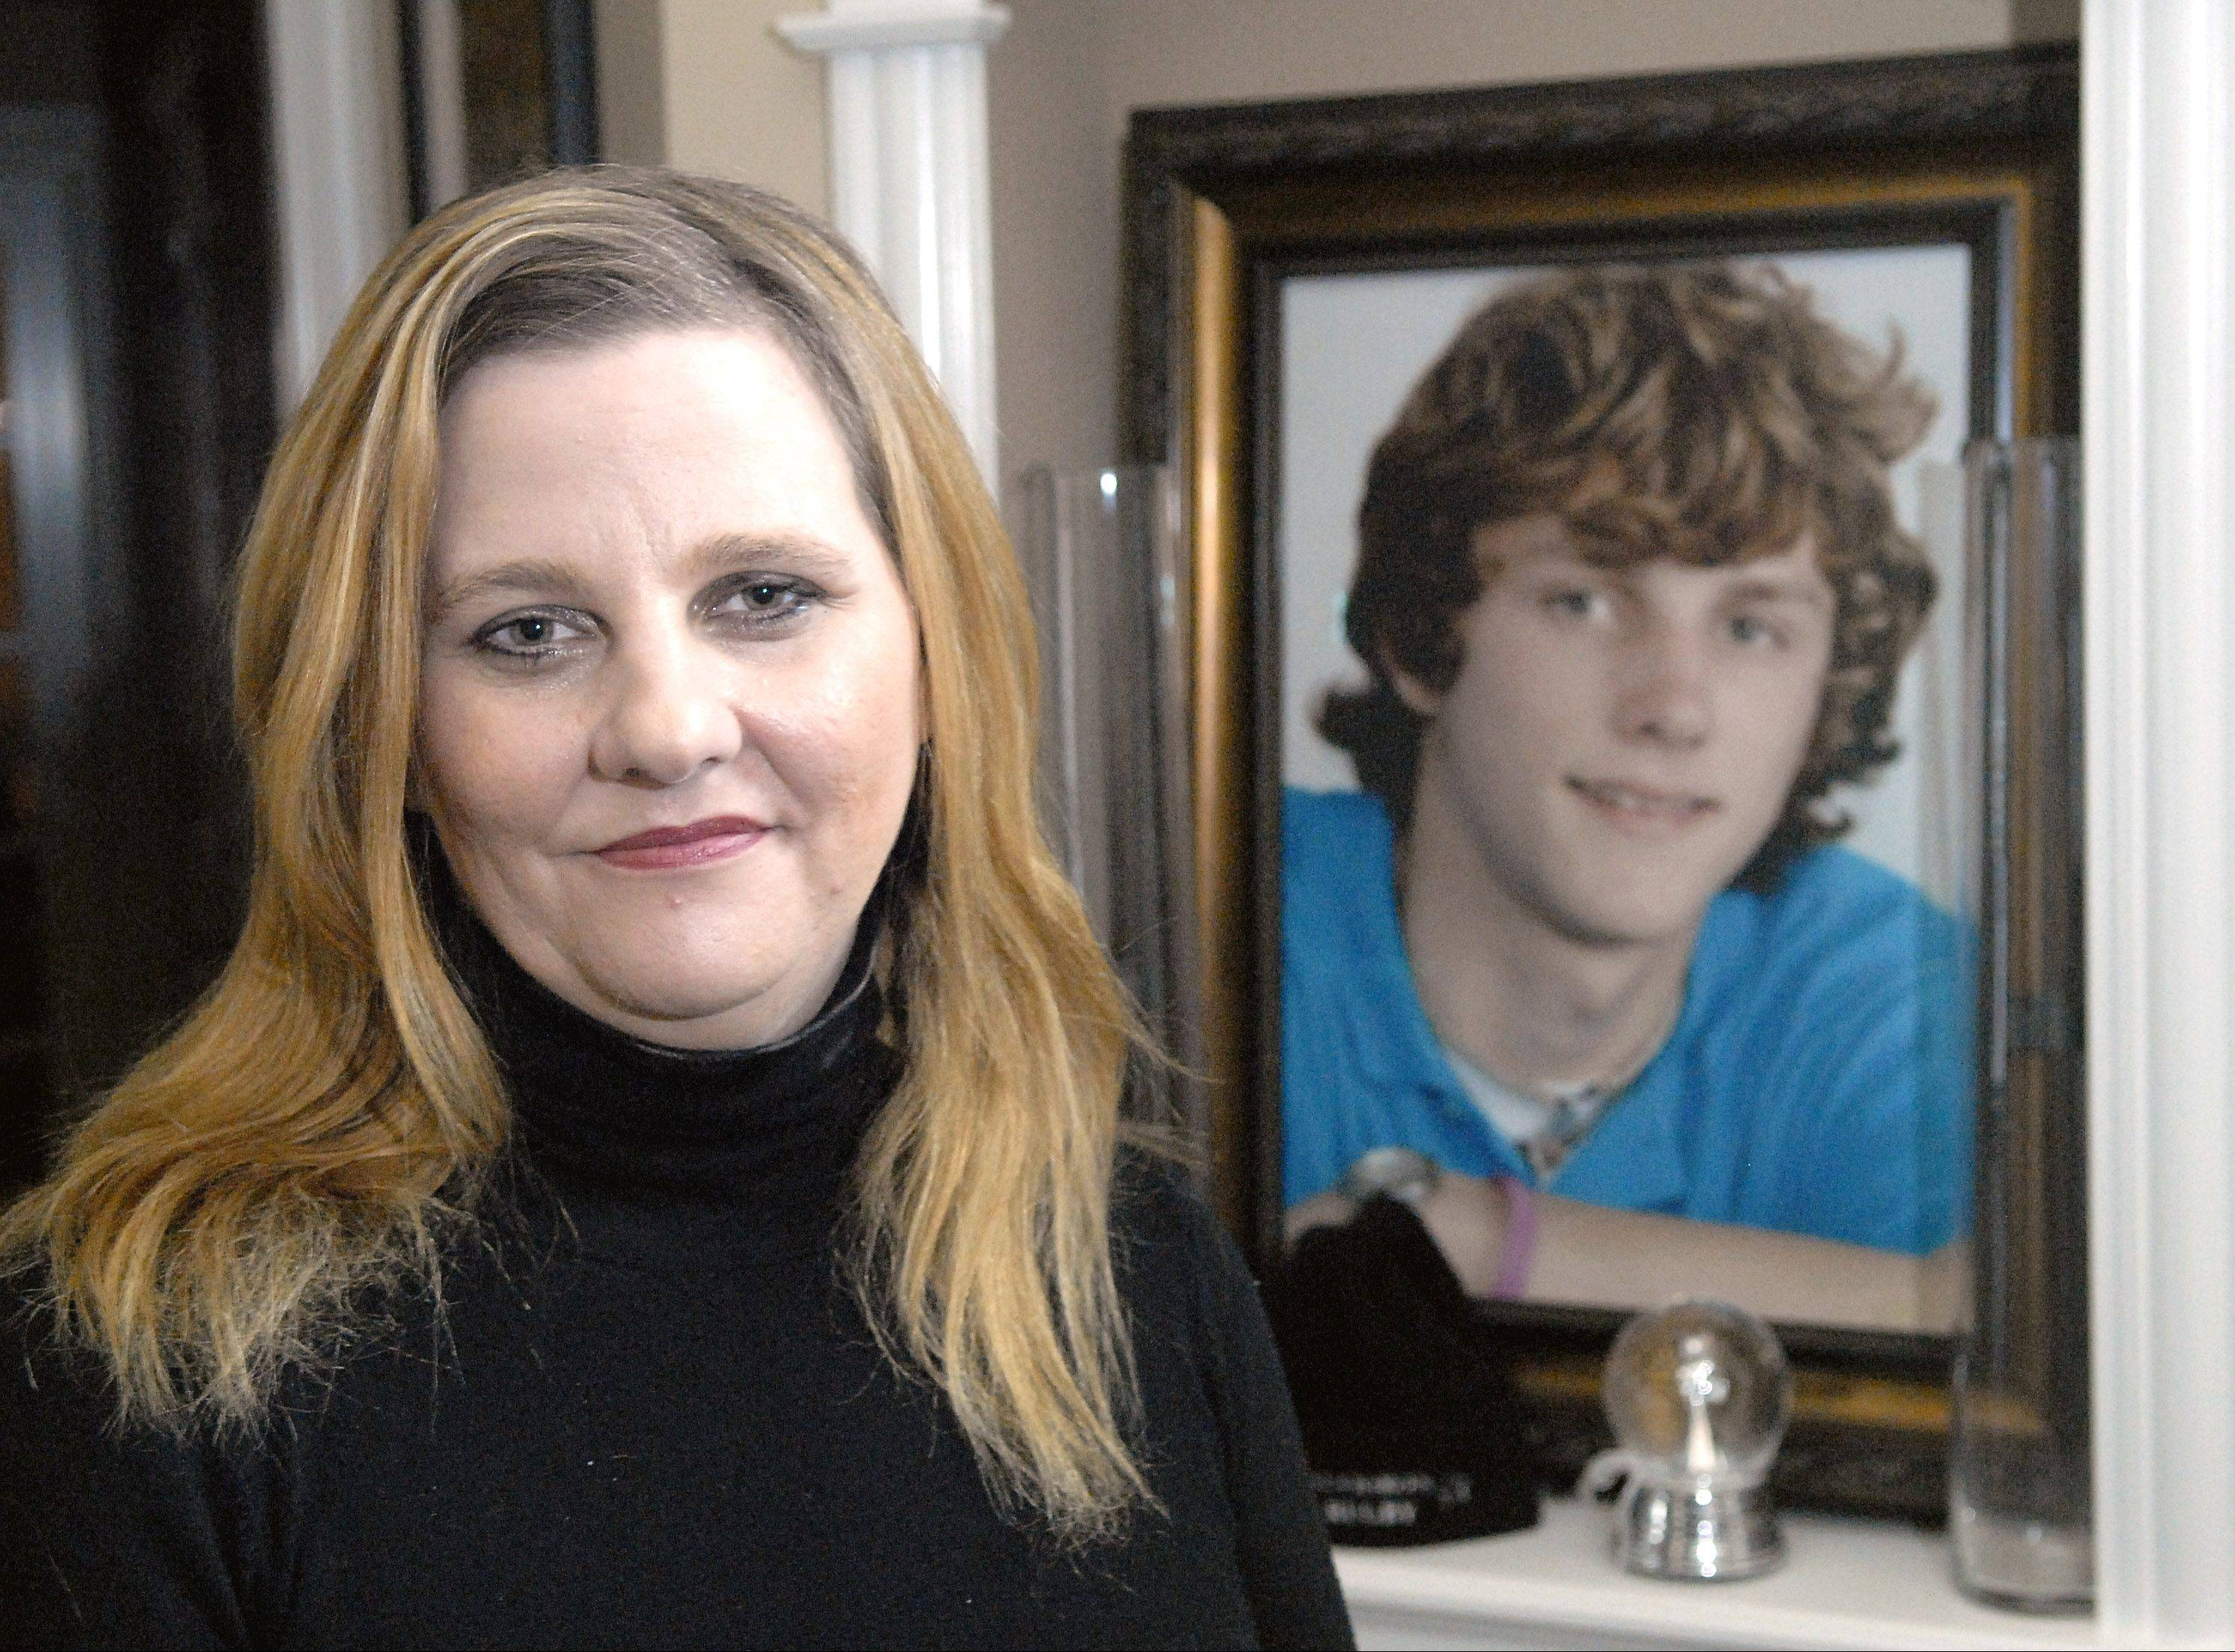 Mary Godee sits by a senior portrait of her late son, Cameron, in her Elburn home. Cameron, a 2009 St. Charles East High School graduate, was killed in a drunken driving crash. The driver, Onofrio Lorusso, of Wayne, violated his probation for the fatal DUI and got sentenced to 30 days in jail Thursday. Mary Godee and prosecutors wanted prison time. Kane County Judge Timothy Sheldon also said Godee sent him a threatening letter, which she denies, and she said she plans to file a complaint against him.